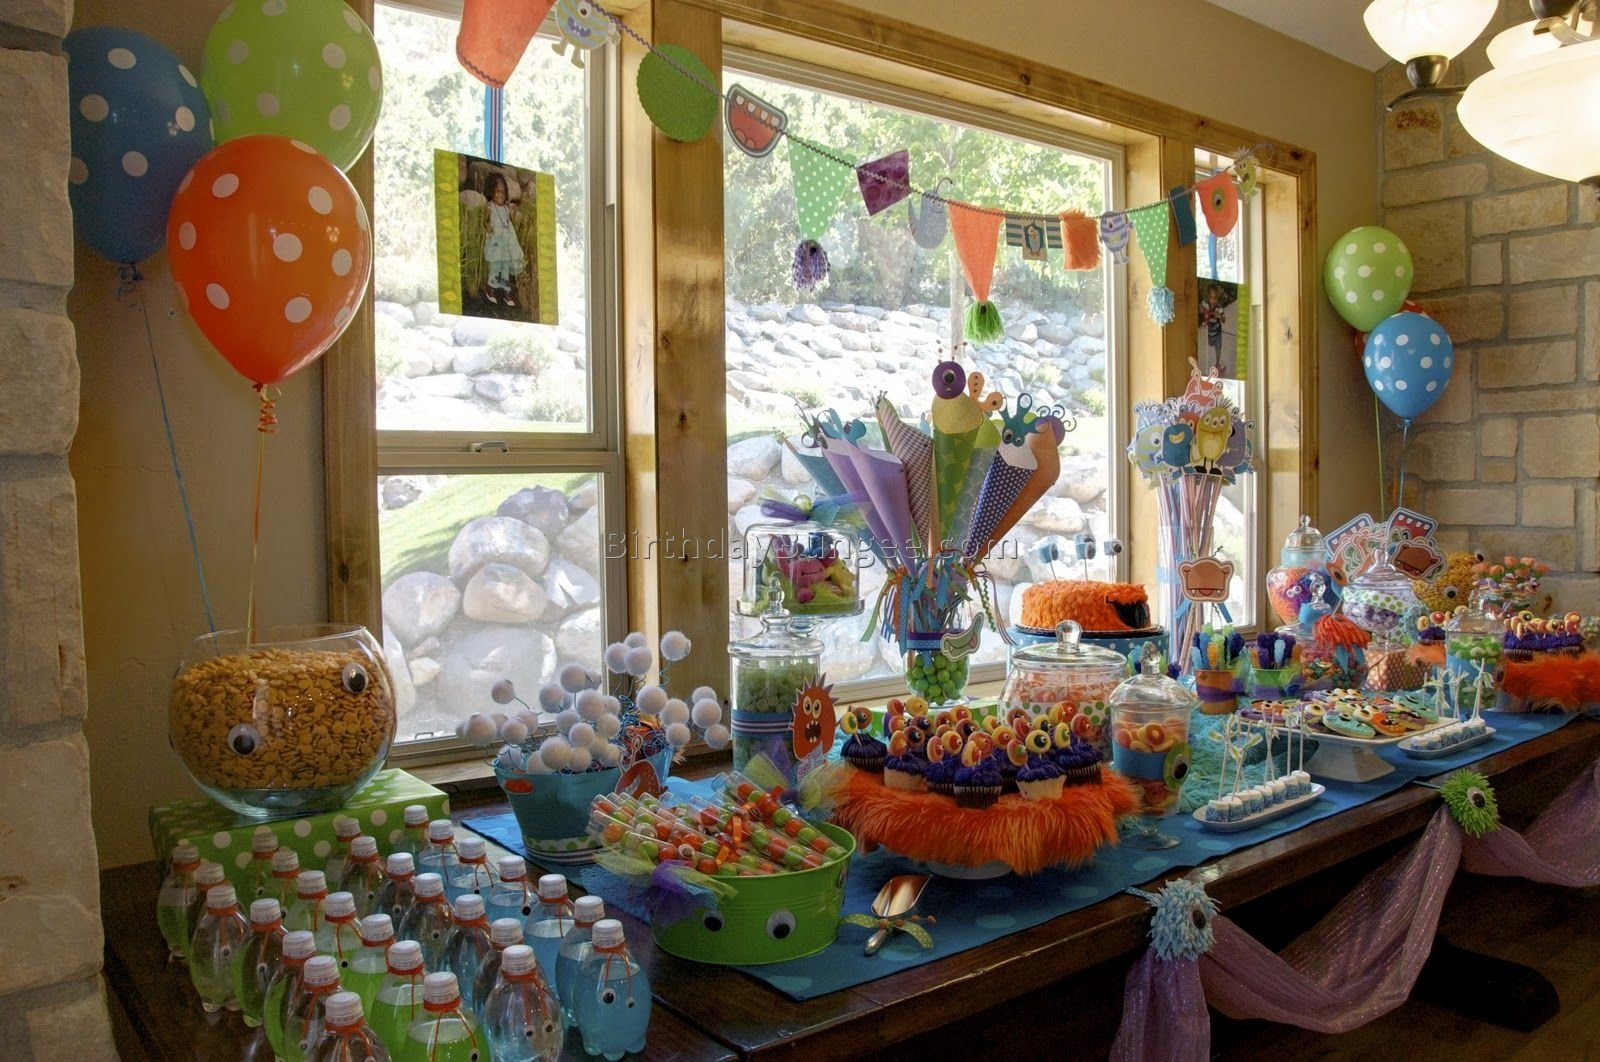 10 Cute 3 Year Old Birthday Party Ideas themes birthday 6 year old boy birthday party ideas at home in best 4